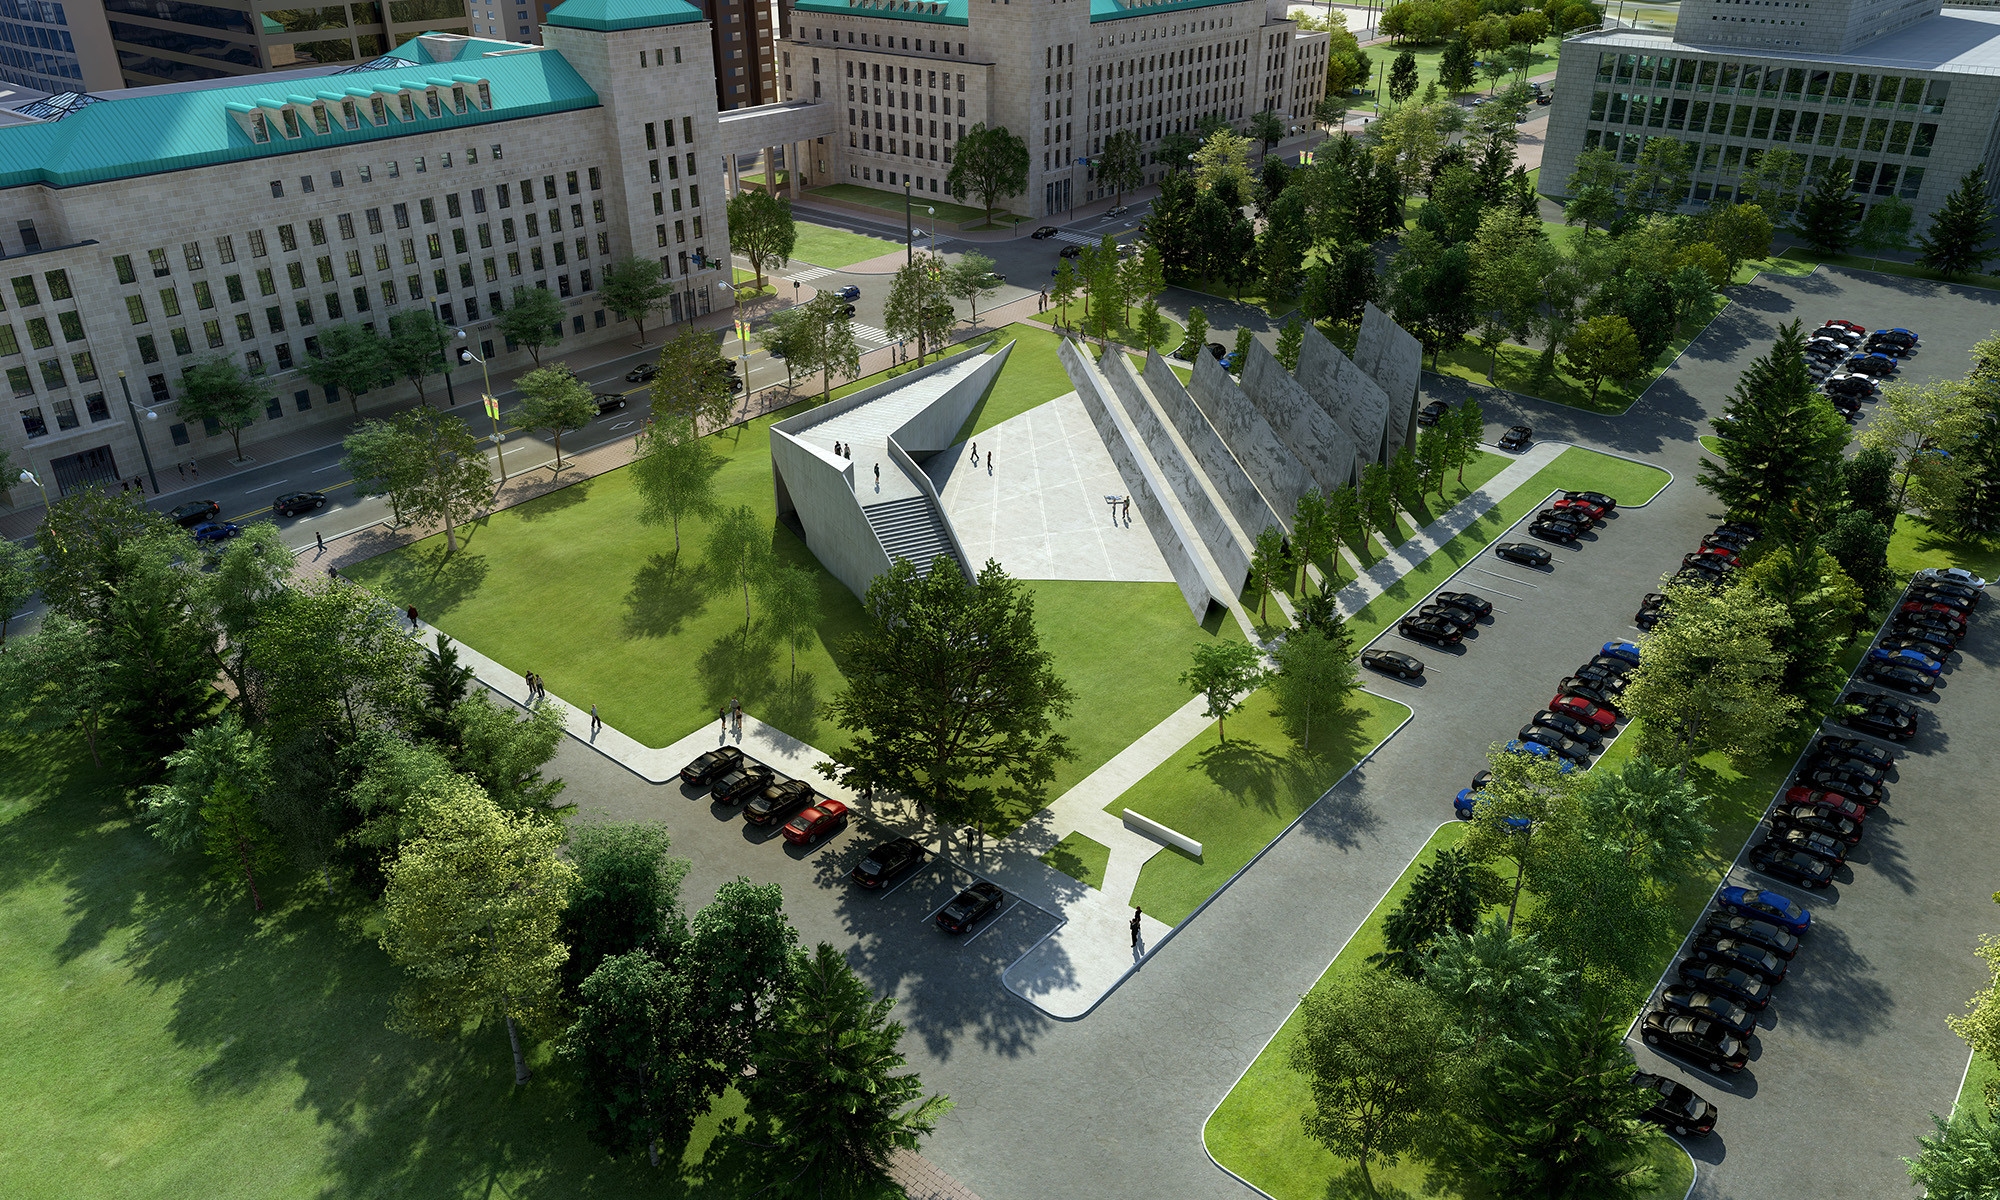 ABSTRAKT Studio Architecture Chosen to Design Canadian Memorial to the Victims of Communism, © ABSTRAKT Studio Architecture